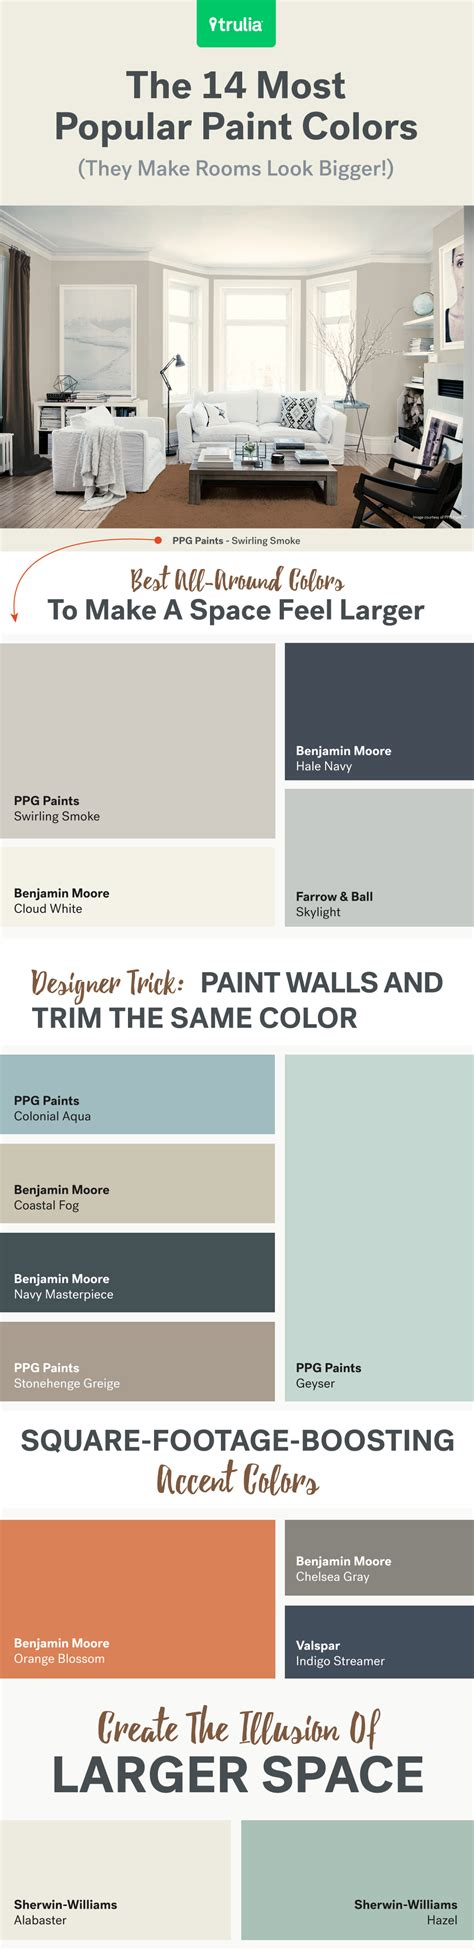 14 Popular Paint Colors For Small Rooms  Life At Home. White And Oak Kitchen Cabinets. Antique White Painted Kitchen Cabinets. Small Business Centre Kitchener. Multi Level Kitchen Island. Unique Kitchen Ideas. Belmont White Kitchen Island. White Kitchen Canister Sets Ceramic. Kitchen Decorative Ideas